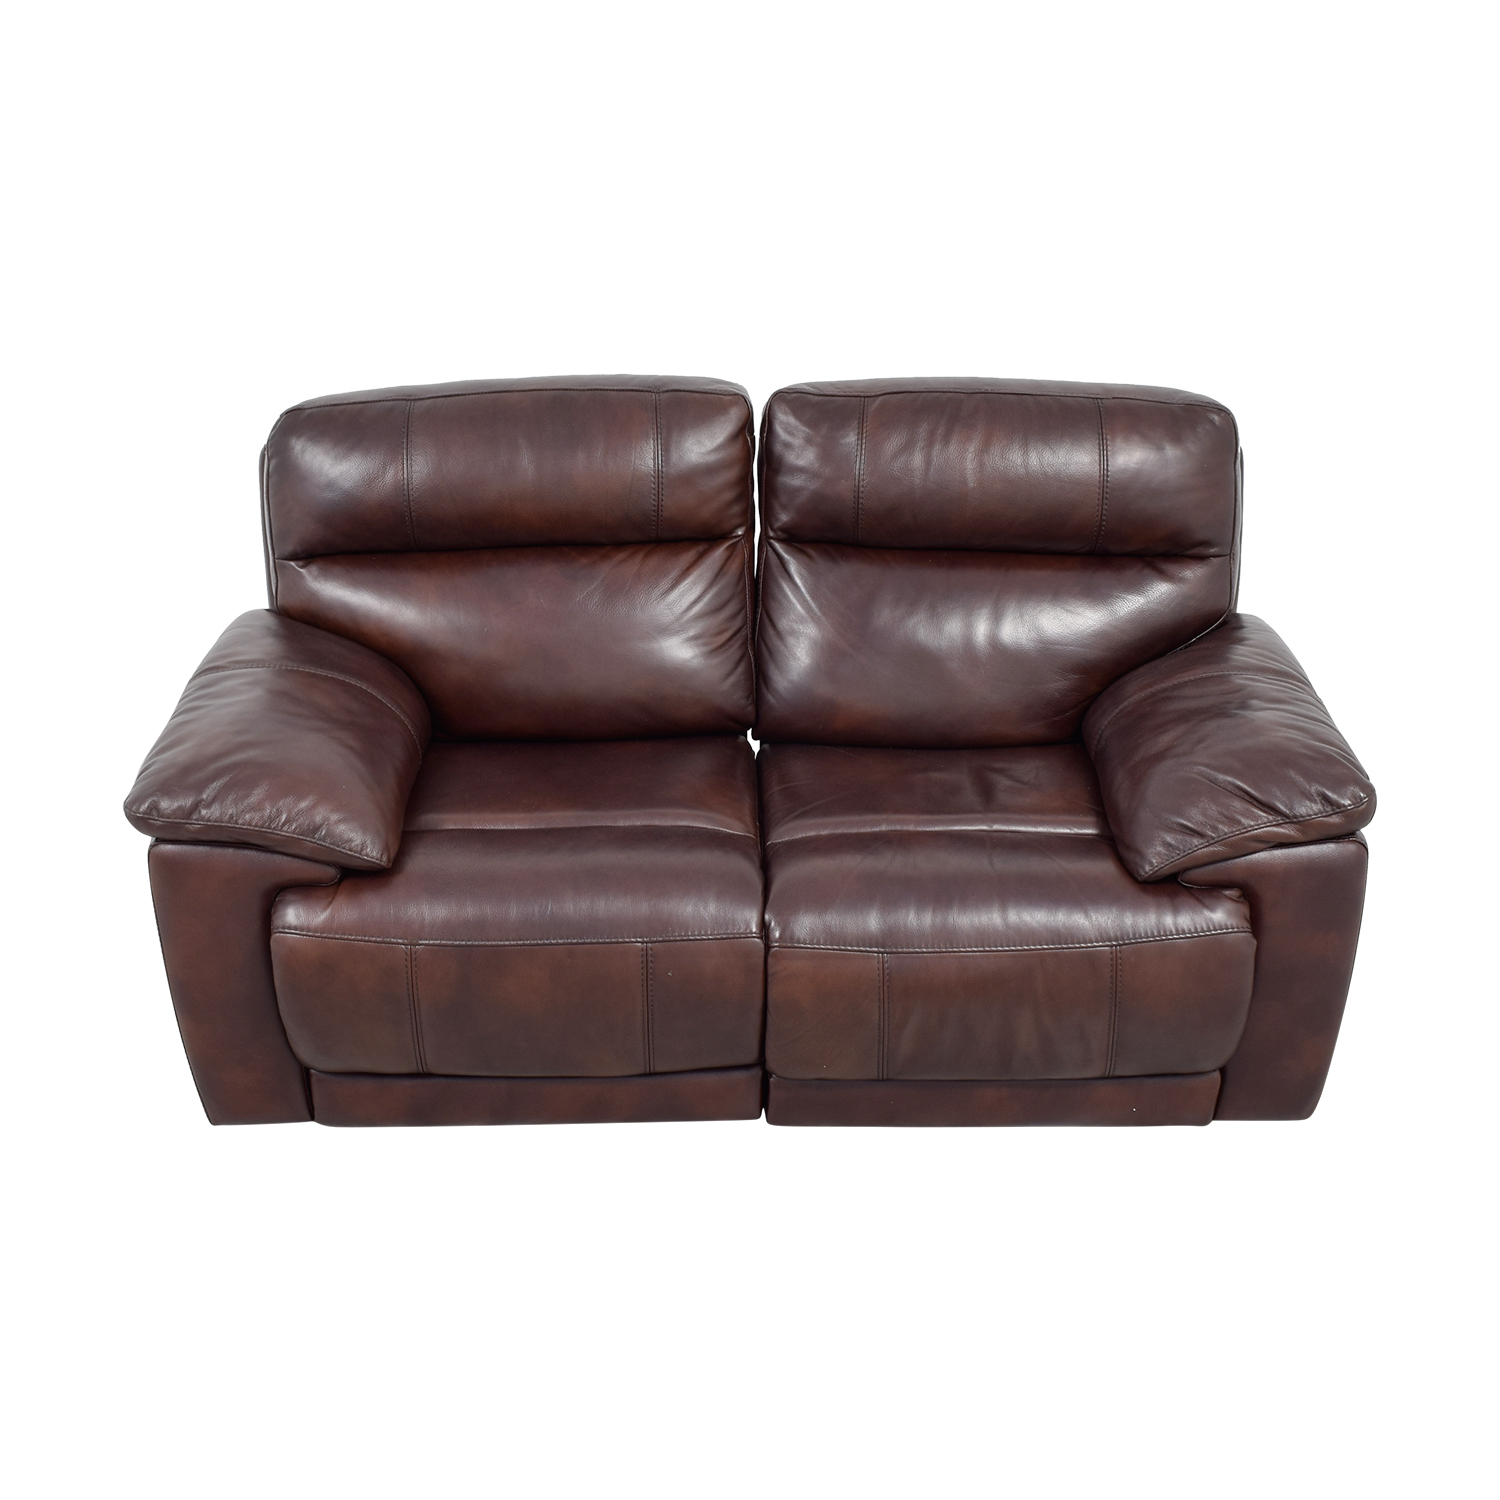 Raymour & Flanigan Raymour & Flanigan Burgundy Leather Double Reclining Sofa Cherry